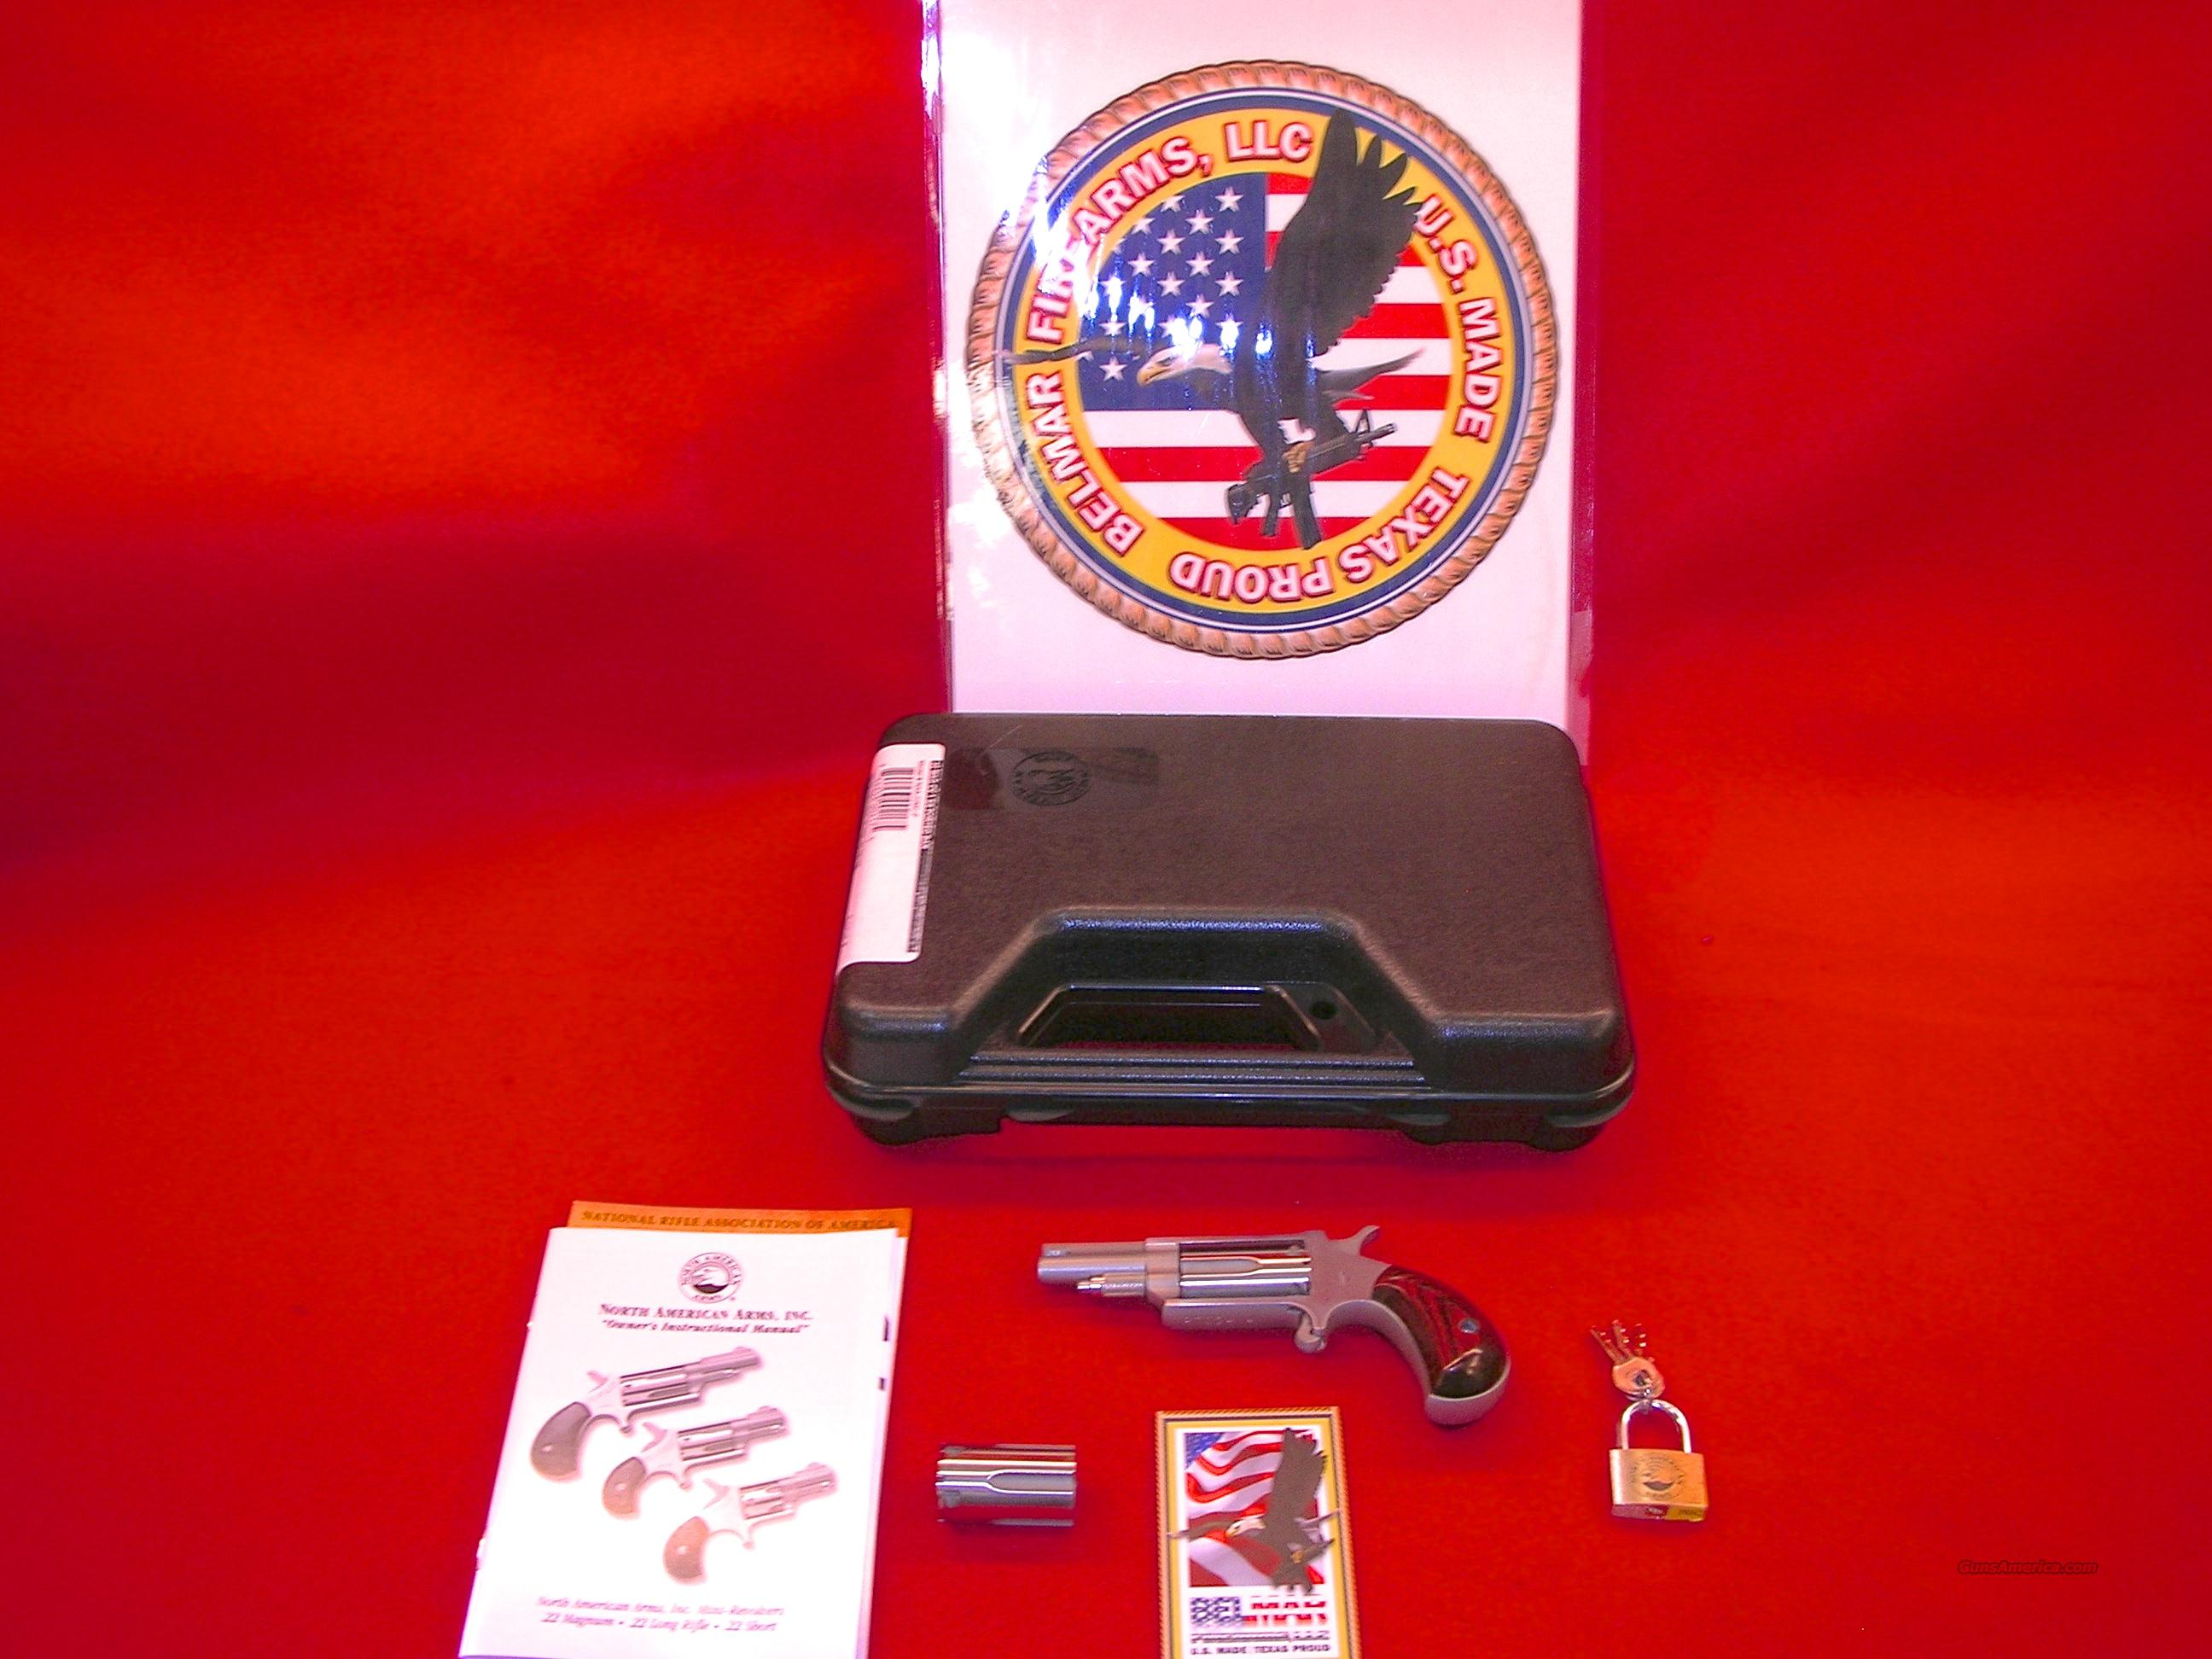 North American Arms 22 Mag/LR 1 5/8 Ported Barrel With Conv CYL  Guns > Pistols > North American Arms Pistols